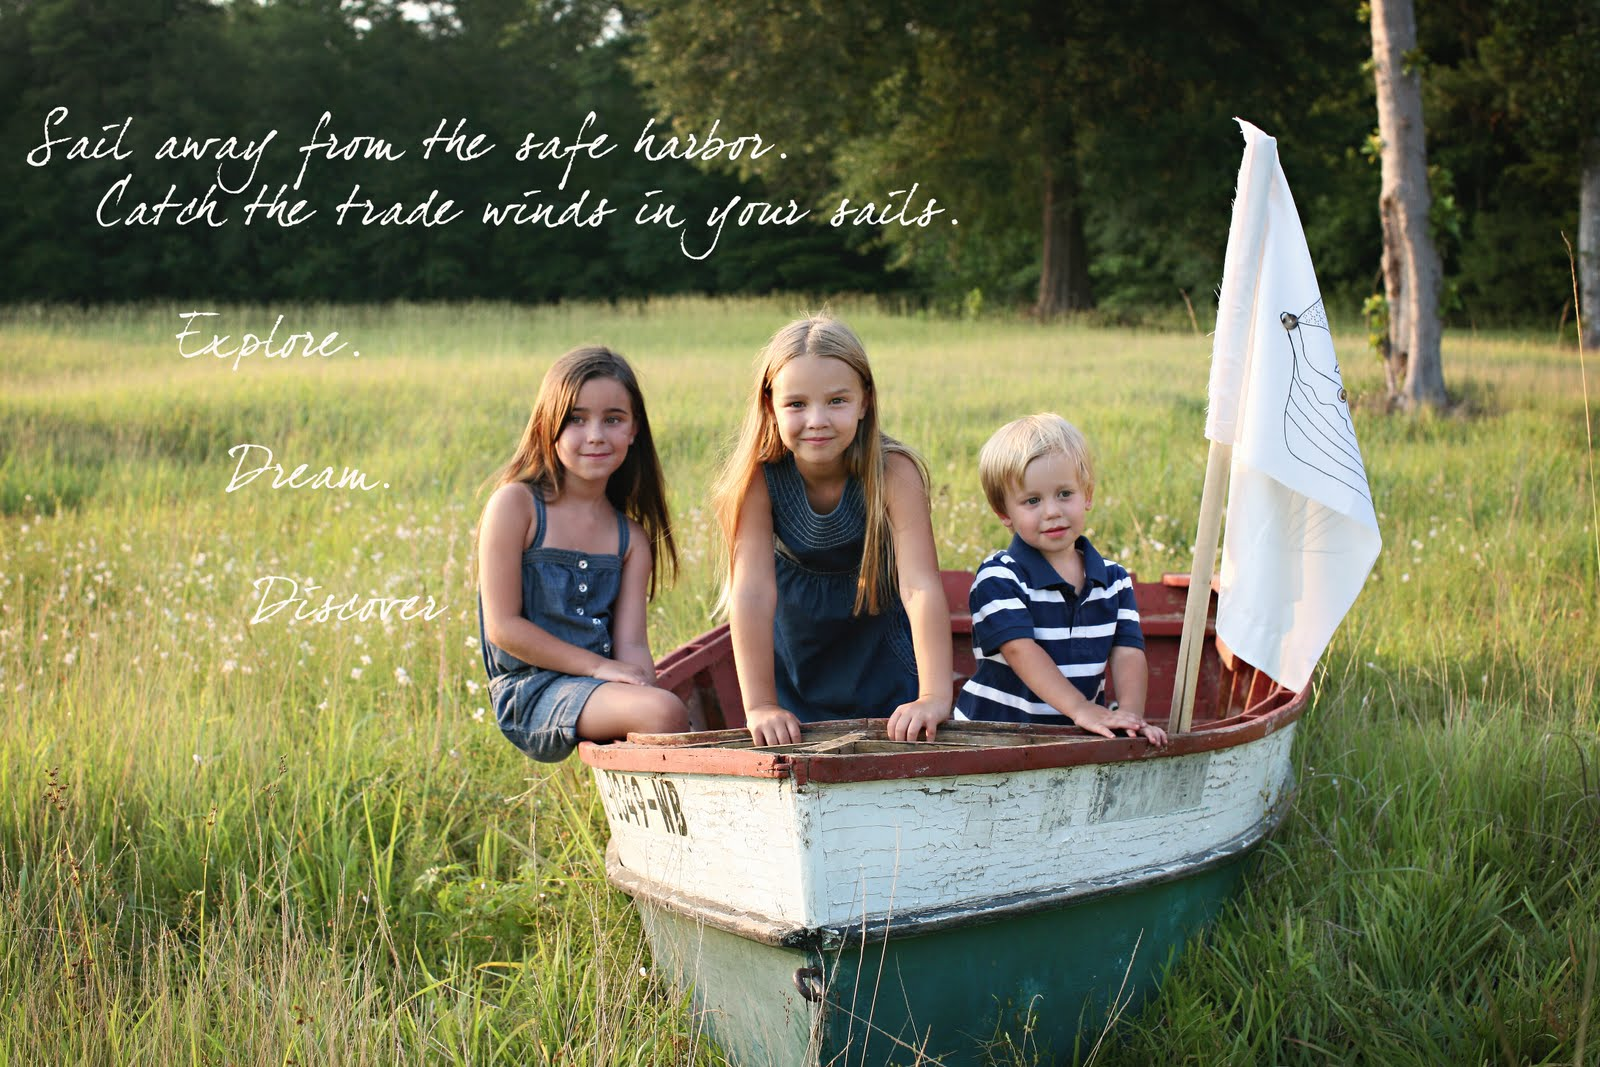 Boat quote #4